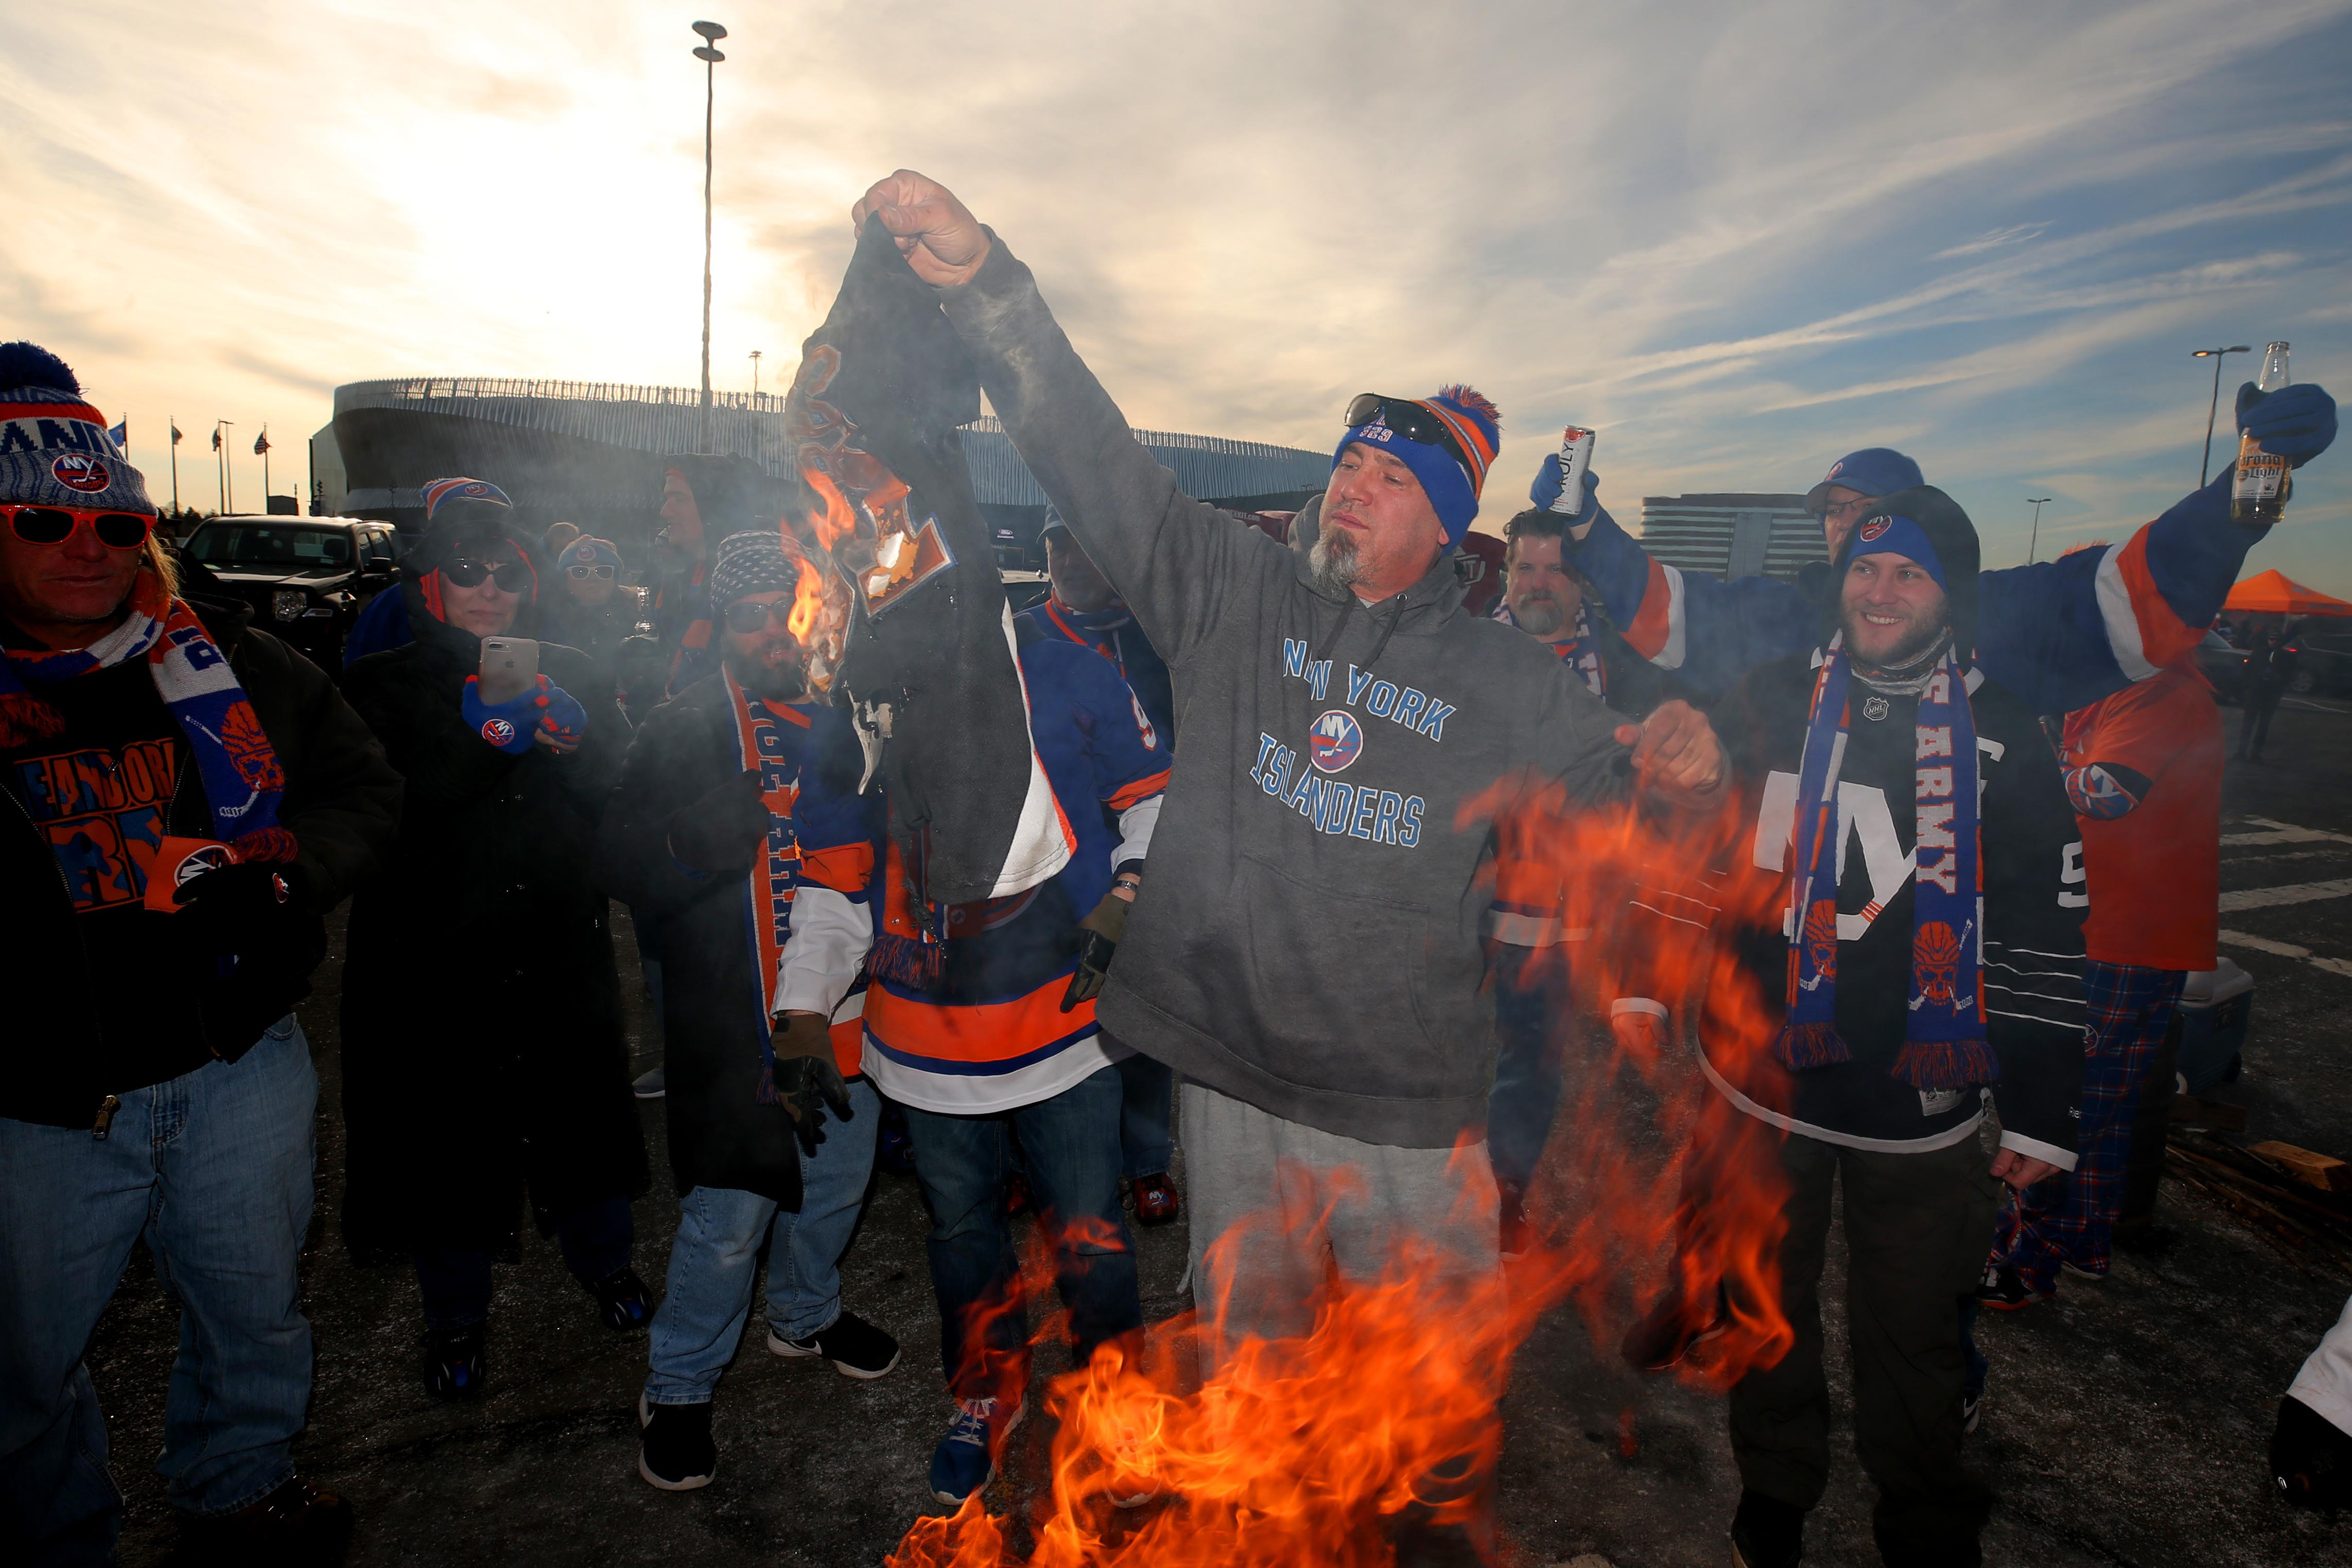 Feb 28, 2019; Brooklyn, NY, USA; New York Islanders fan Craig Richardson of Seaford (center) burns a John Tavares Islanders t-shirt before a game against the Toronto Maple Leafs at the Nassau Veterans Memorial Coliseum. Mandatory Credit: Brad Penner-USA TODAY Sports